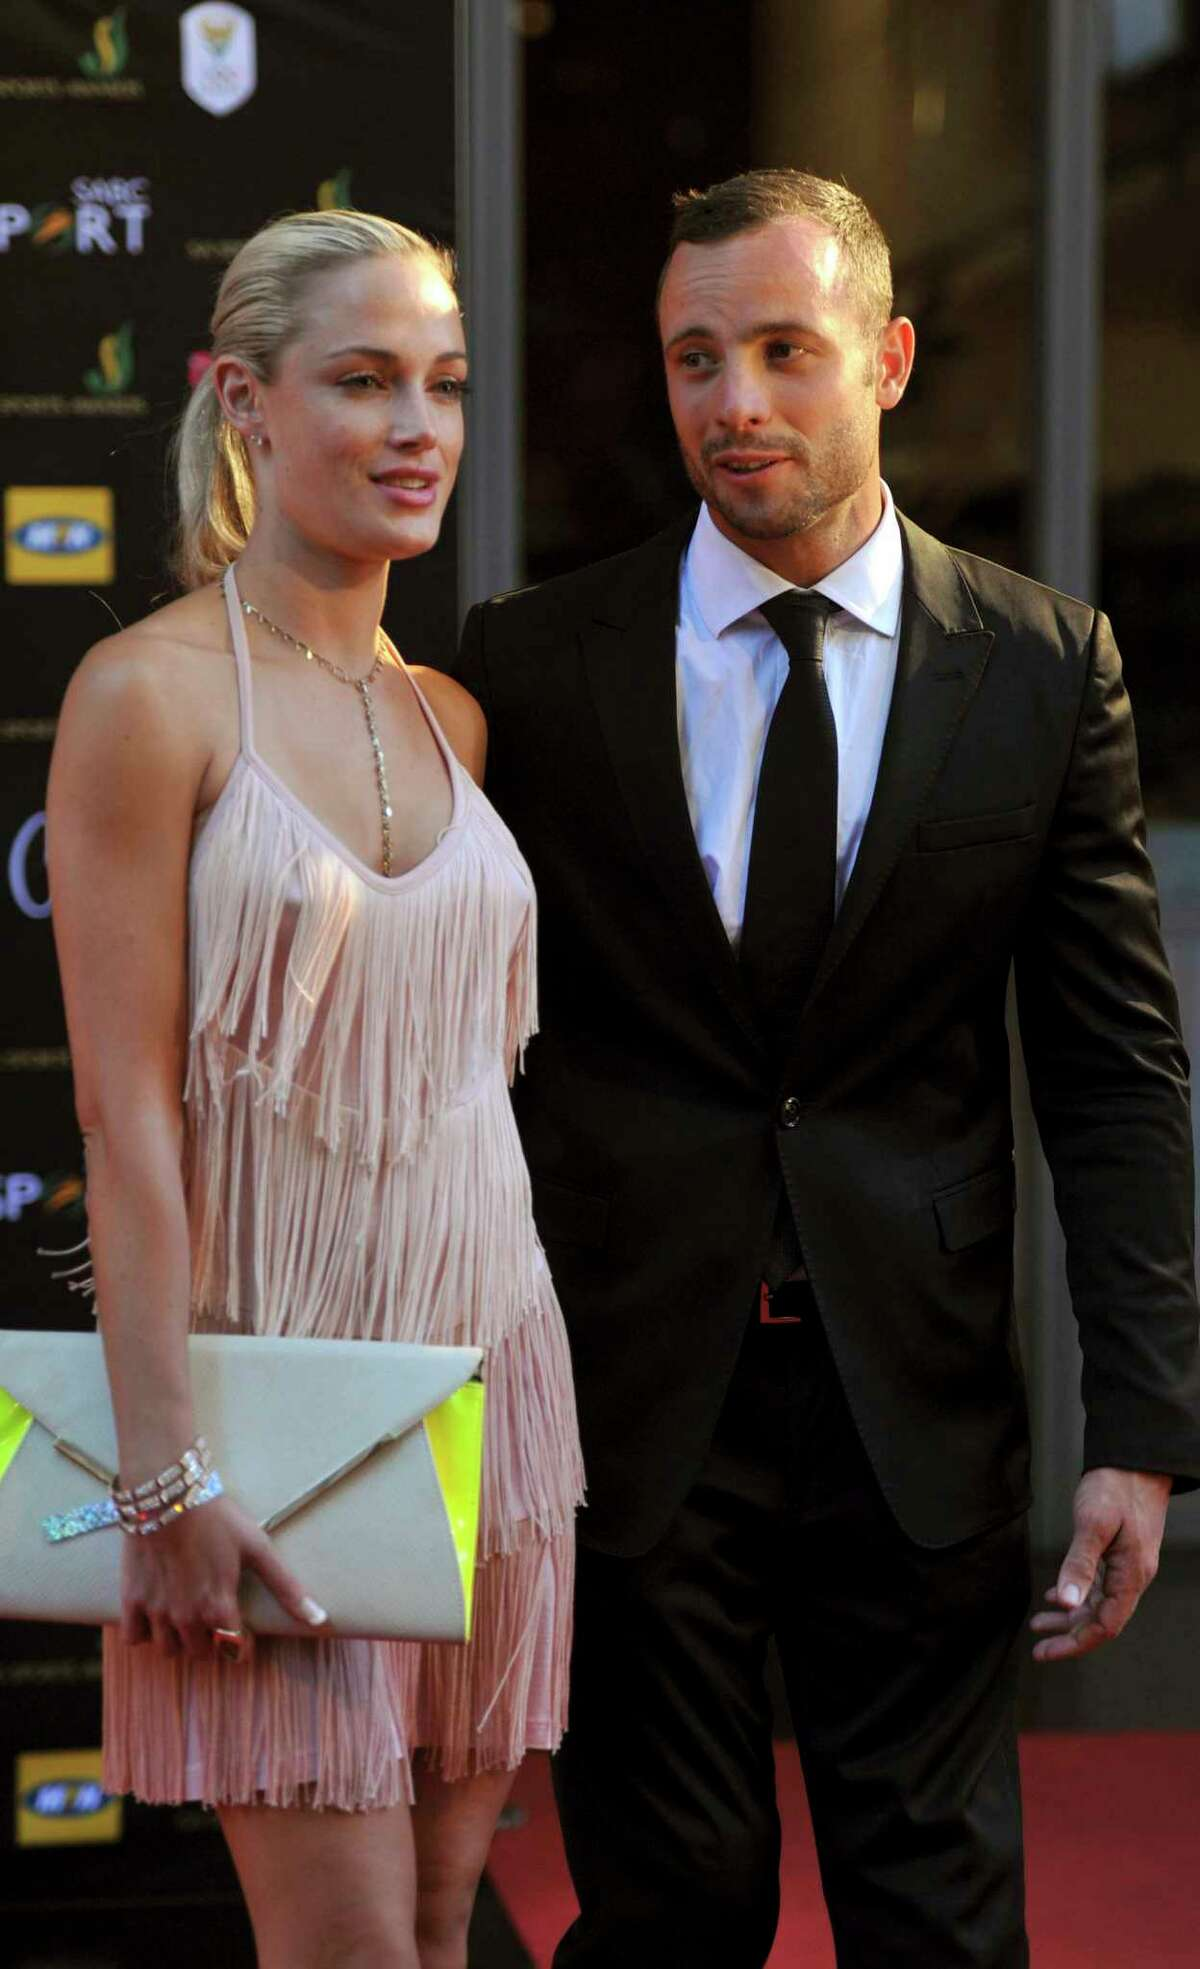 In this Nov. 4, 2012 file photo, South African Olympic athlete Oscar Pistorius and Reeva Steenkamp arrive for an awards ceremony in Johannesburg, South Africa. South Africa's Department of Corrections says a parole board has decided that Oscar Pistorius can be released from prison and moved to house arrest on Tuesday, Oct. 20 2015. The parole board made the decision Thursday, Oct. 15, 2015 after an initial decision to release the double-amputee runner in August was canceled. The Olympic runner has served nearly a year of his five-year sentence for manslaughter for killing Steenkamp.